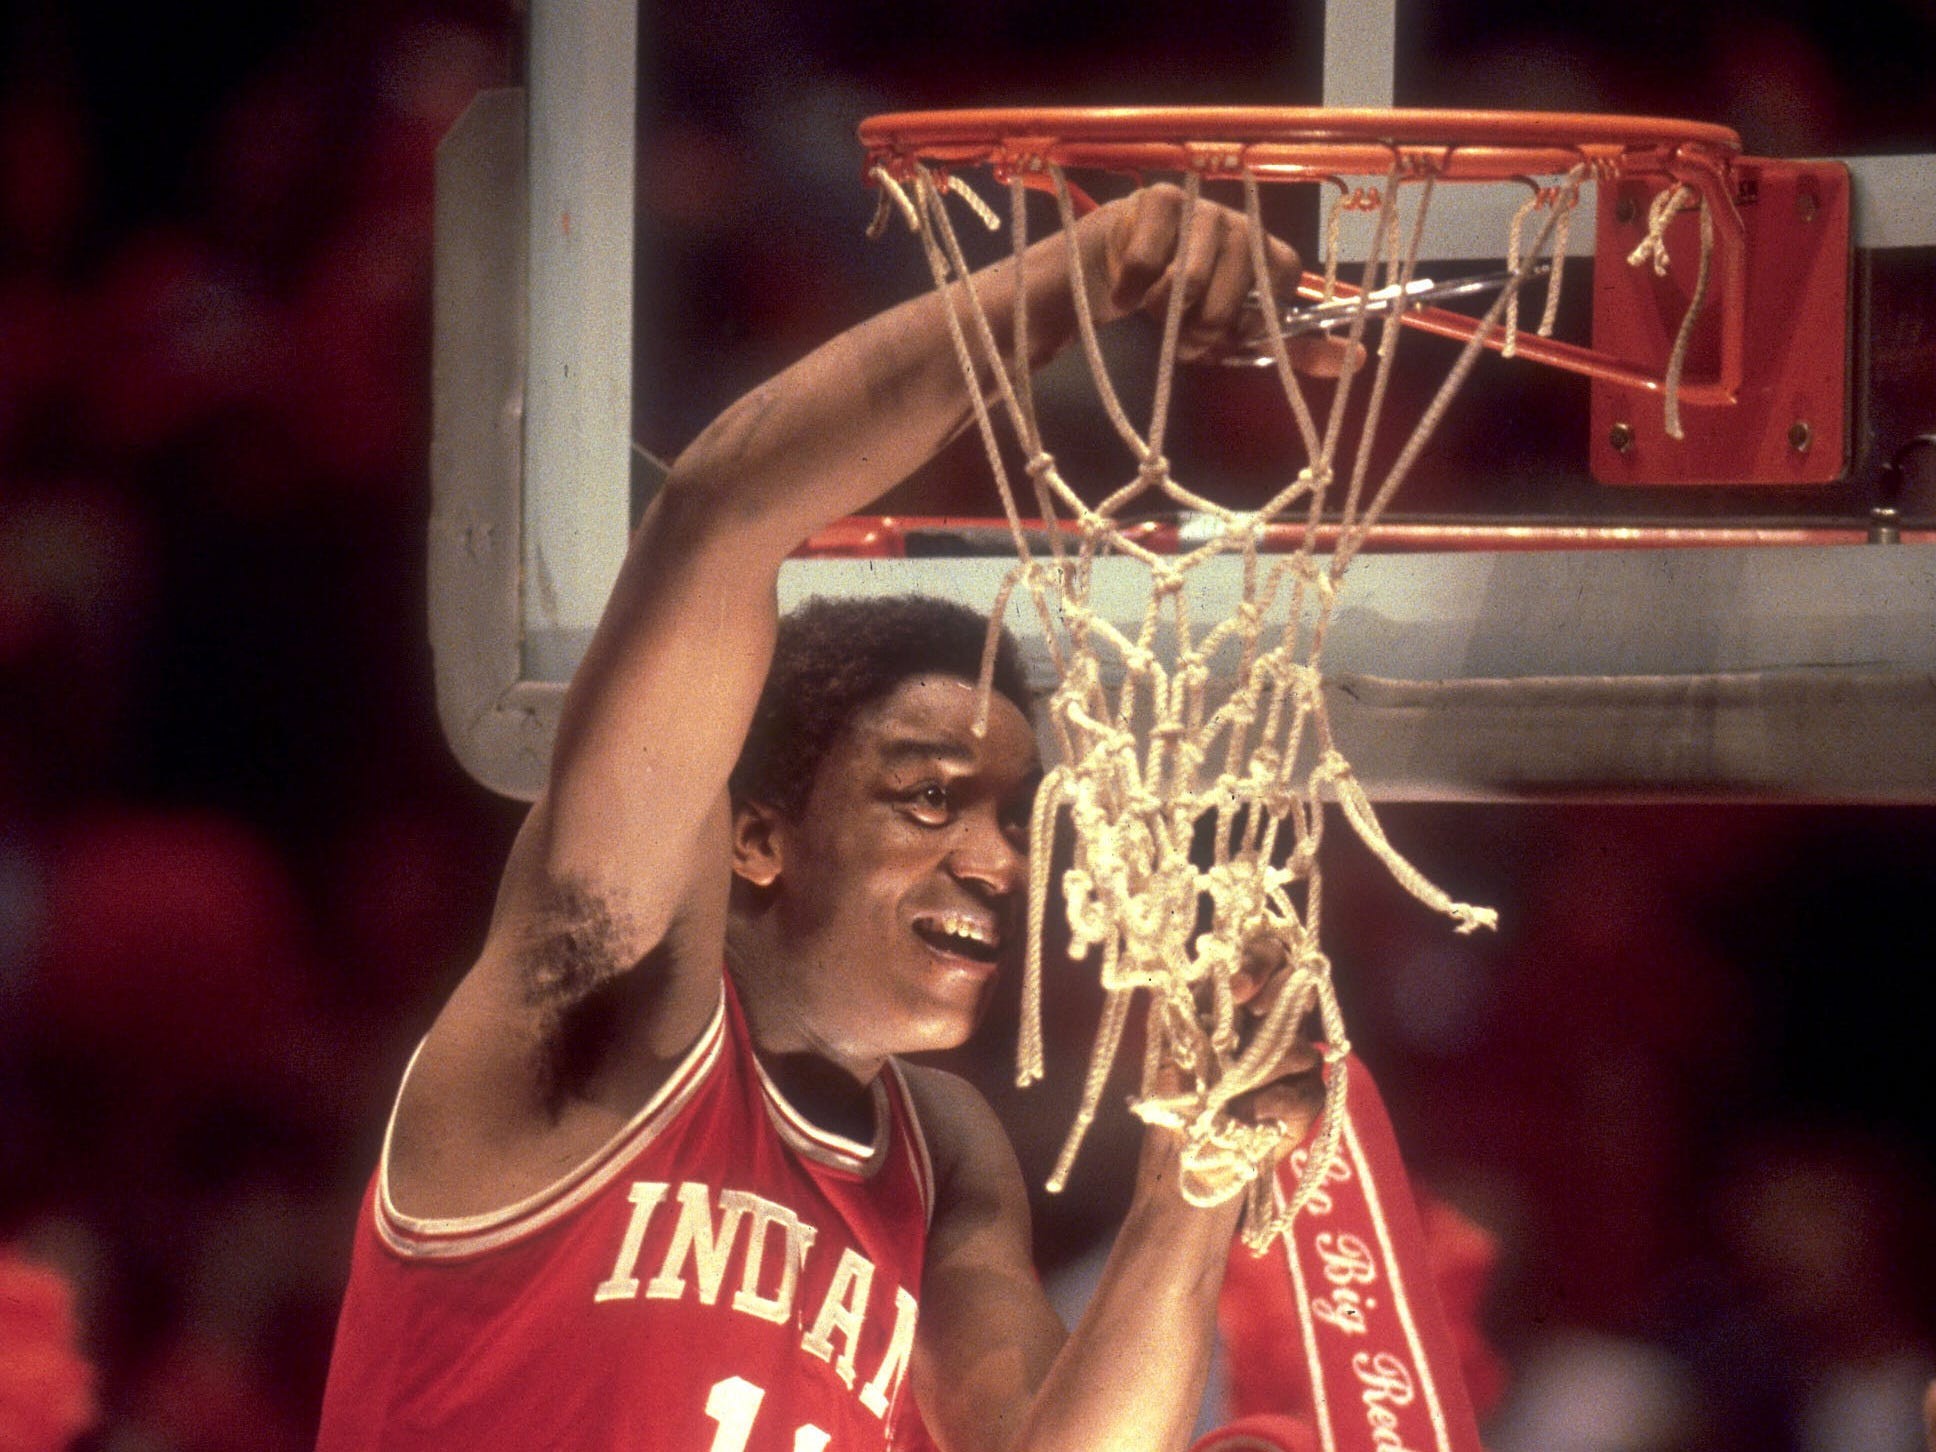 Indiana guard Isiah Thomas (11) cuts the net after winning the NCAA Men's National Basketball semifinal game held in Philadelphia PA at The Spectrum. Indiana defeated LSU 67-49 in March 1981.